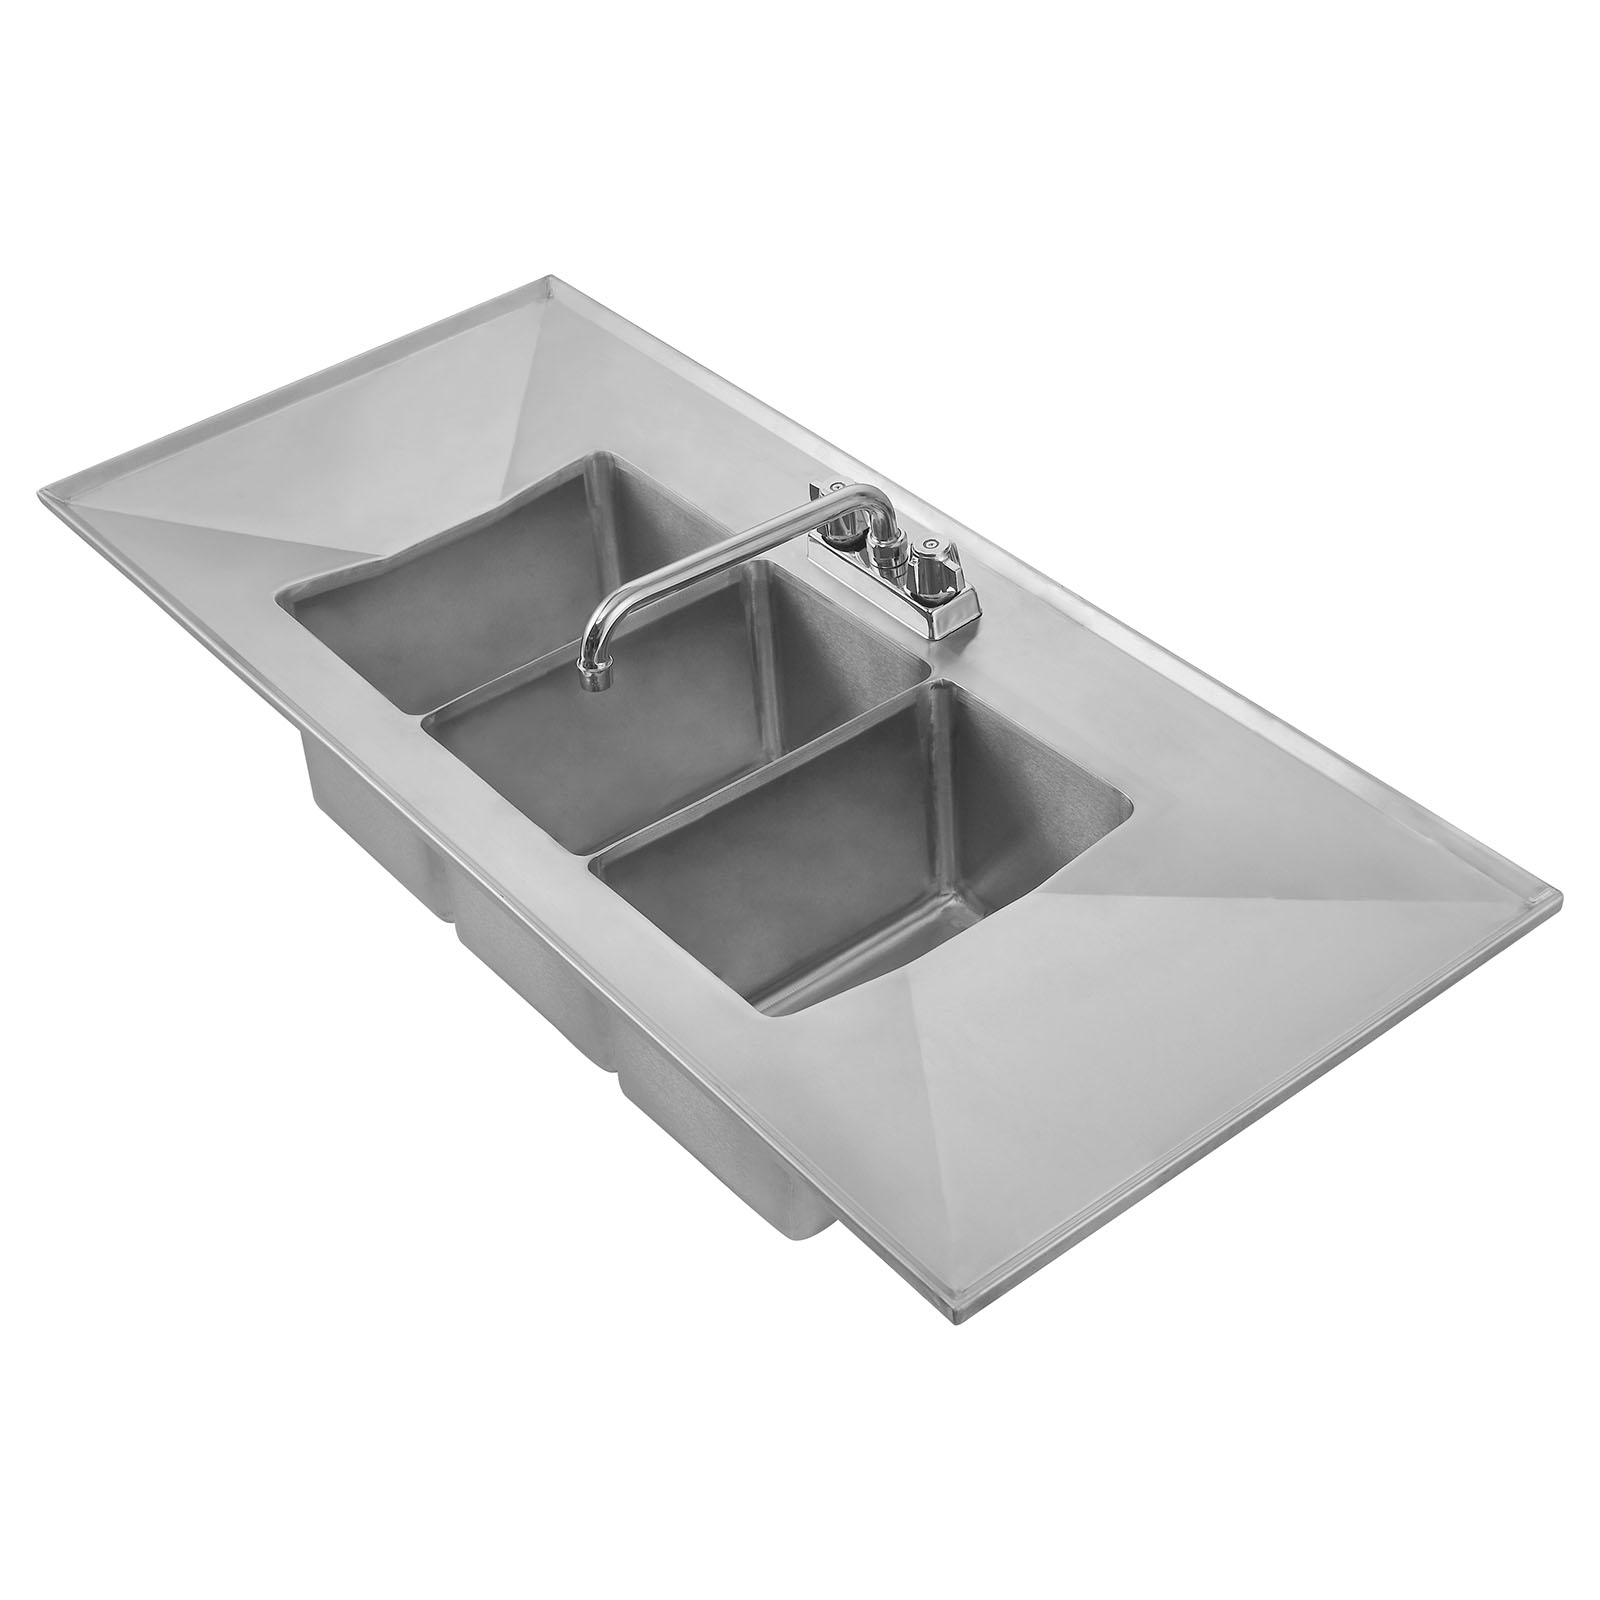 Klinger's Trading DIS-3-2D sink, drop-in